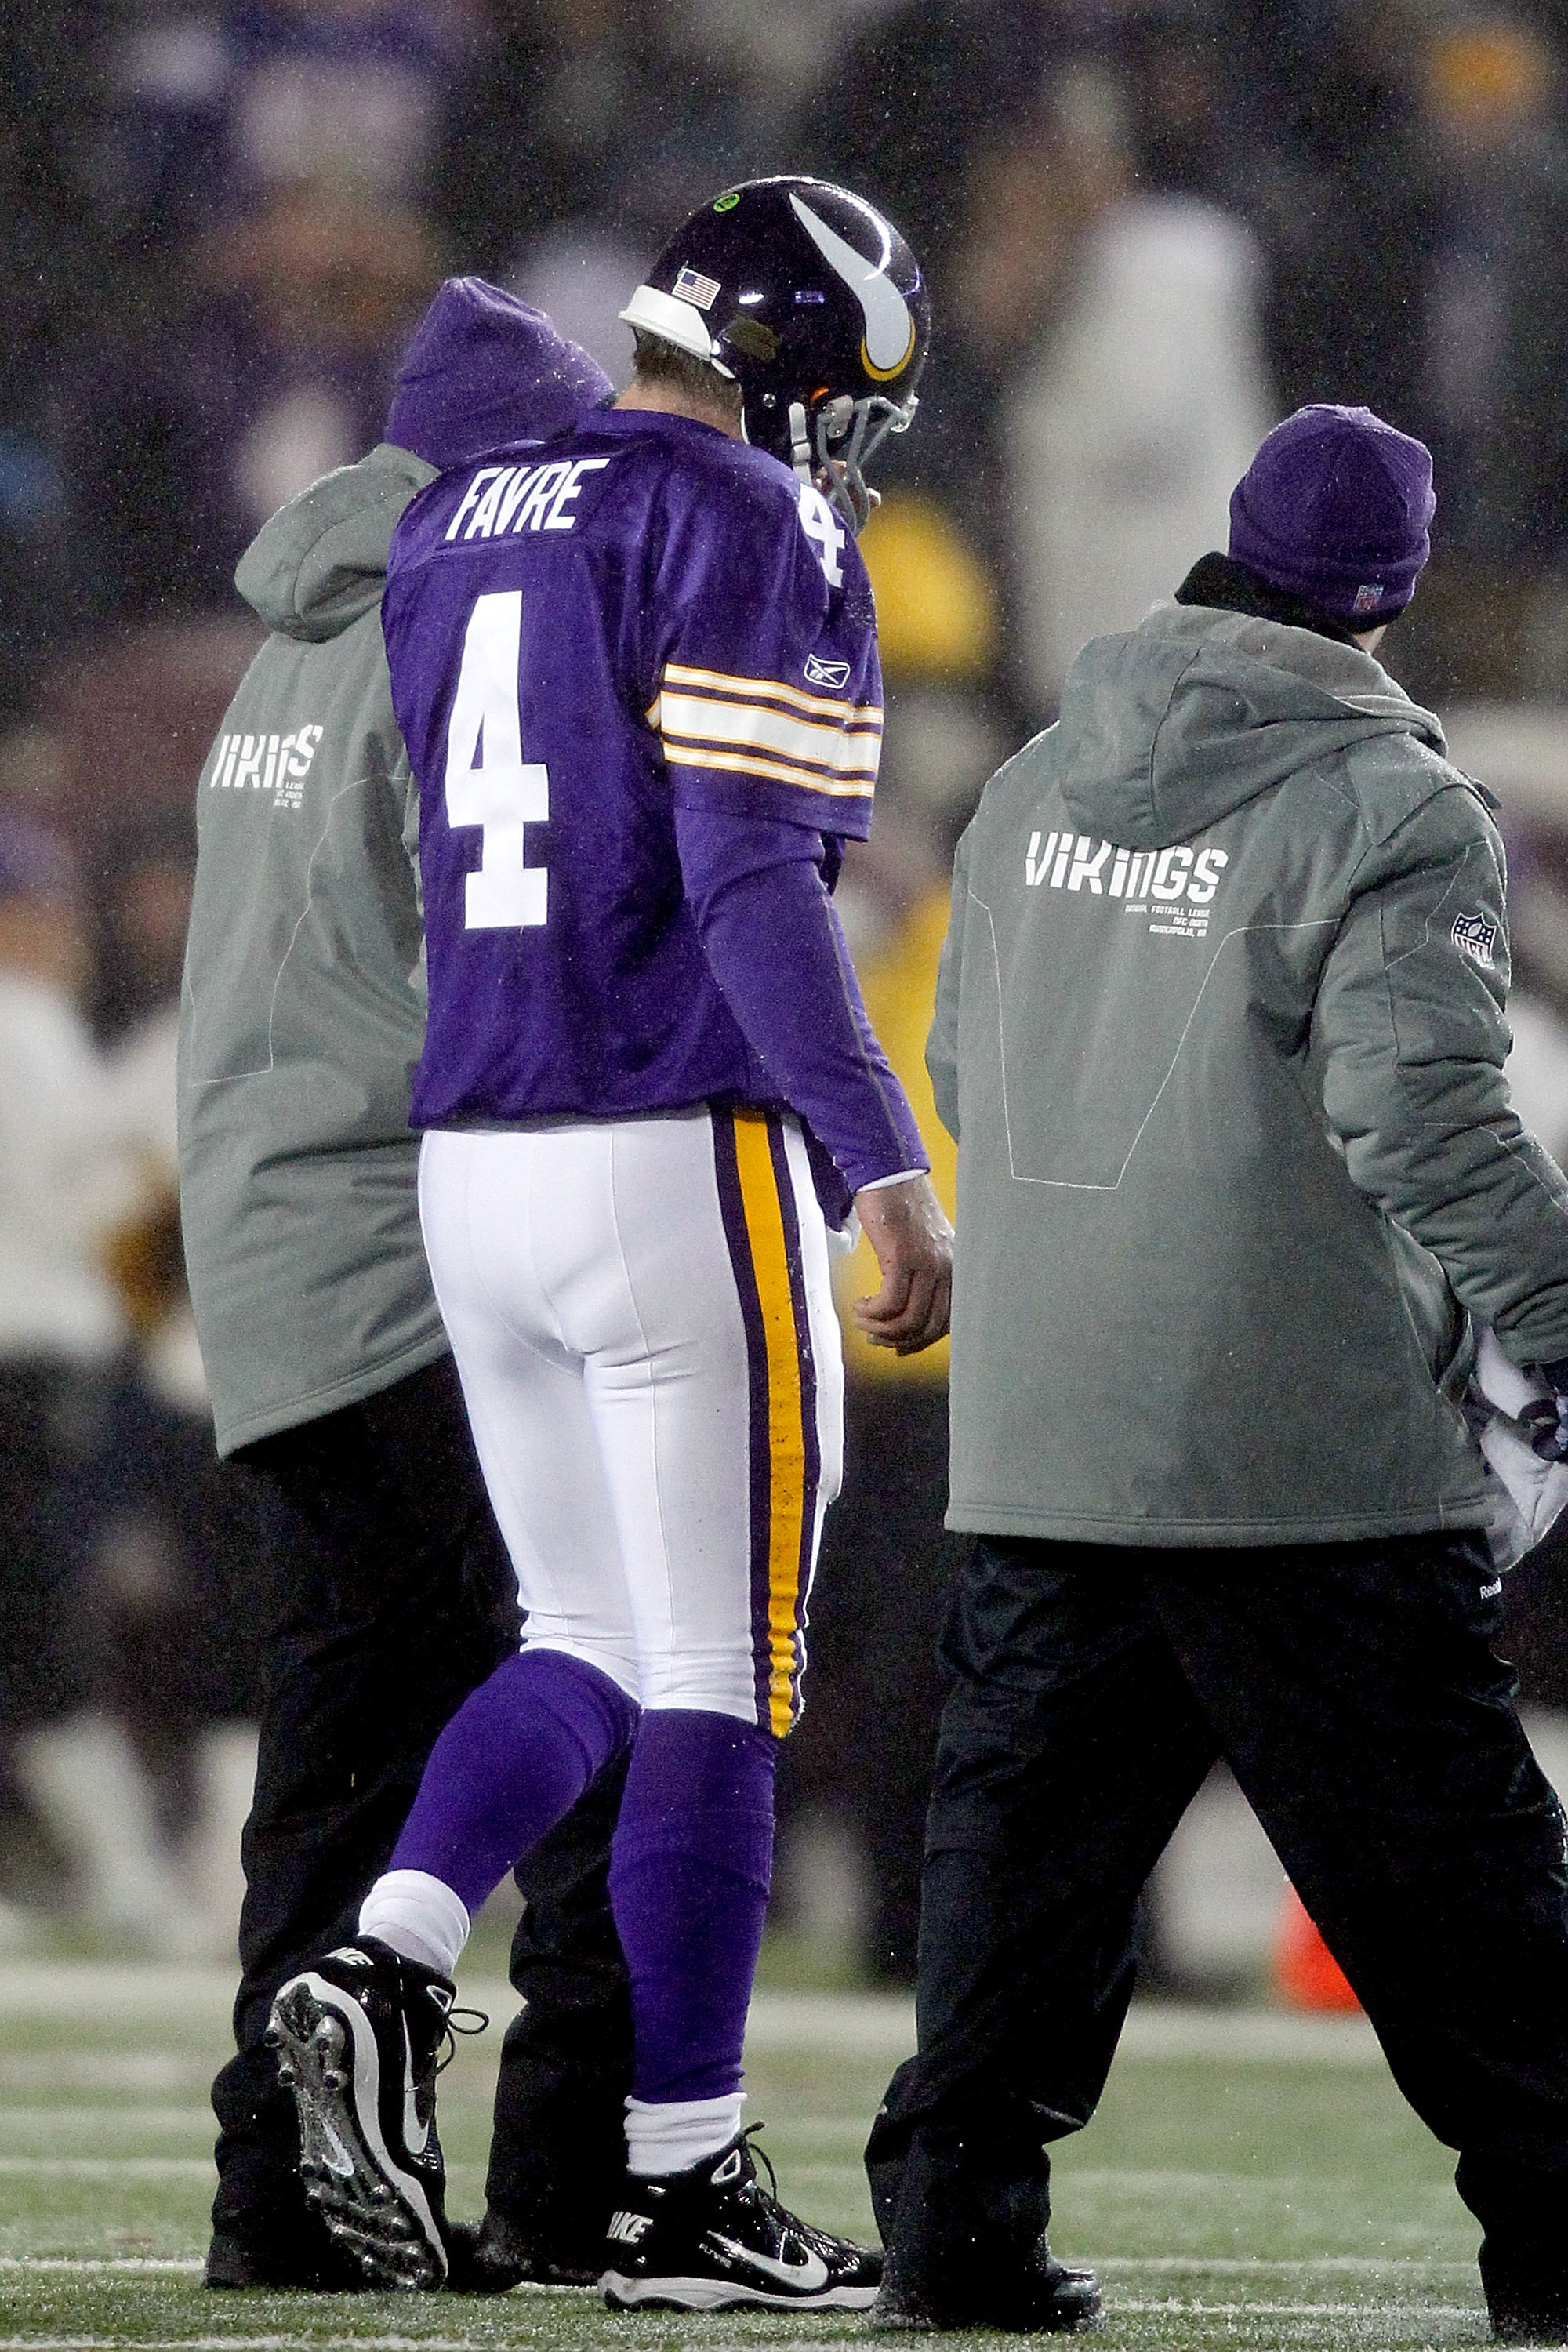 MINNEAPOLIS, MN - DECEMBER 20:  Quarterback Brett Favre #4 of the Minnesota Vikings leaves the field after being sacked by the Chicago Bears at TCF Bank Stadium on December 20, 2010 in Minneapolis, Minnesota.  (Photo by Matthew Stockman/Getty Images)